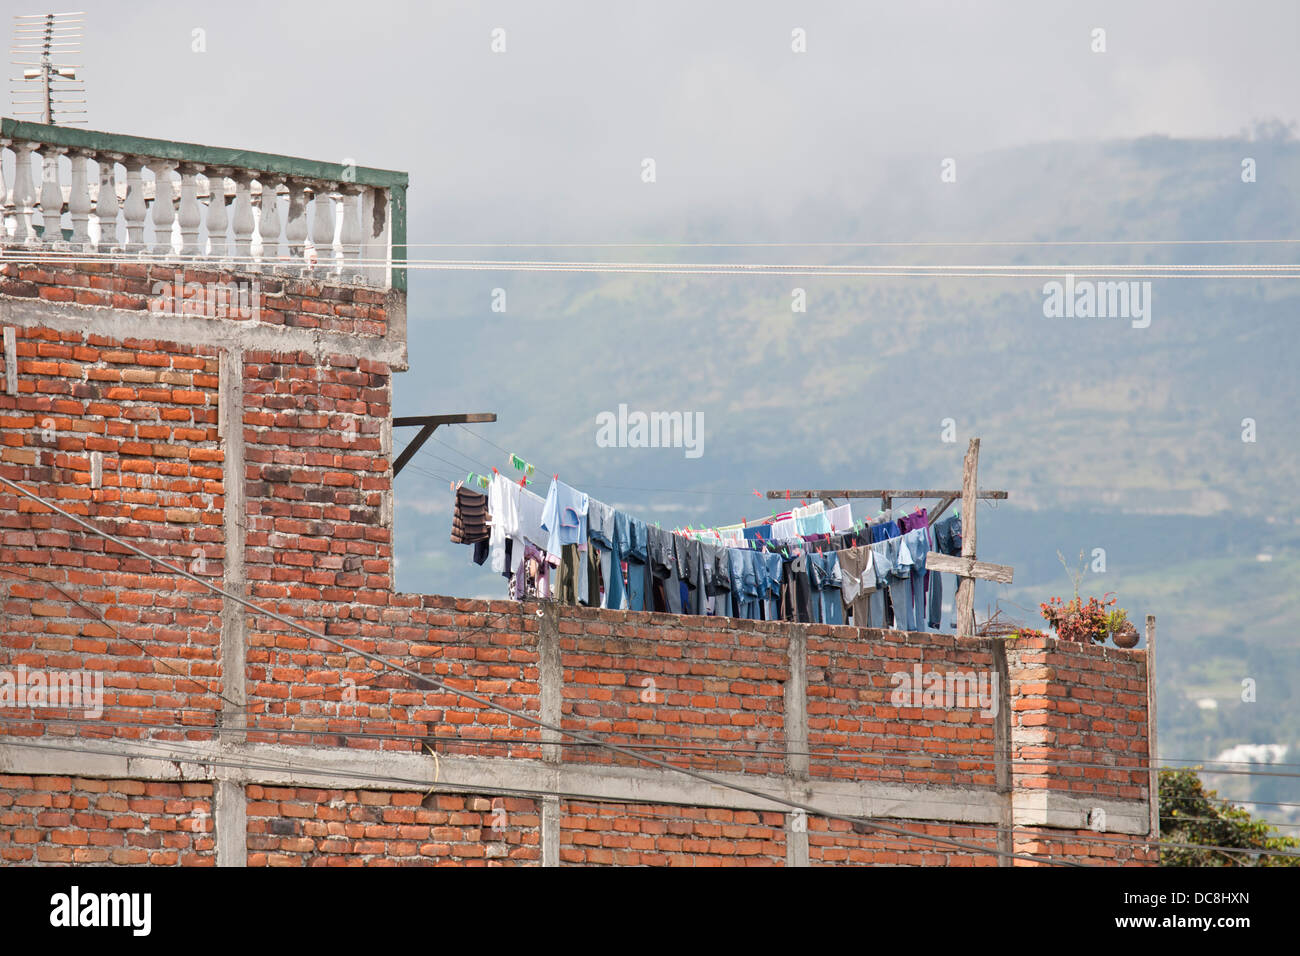 South America, Ecuador, Quito. Laundry hanging on a line to dry. - Stock Image